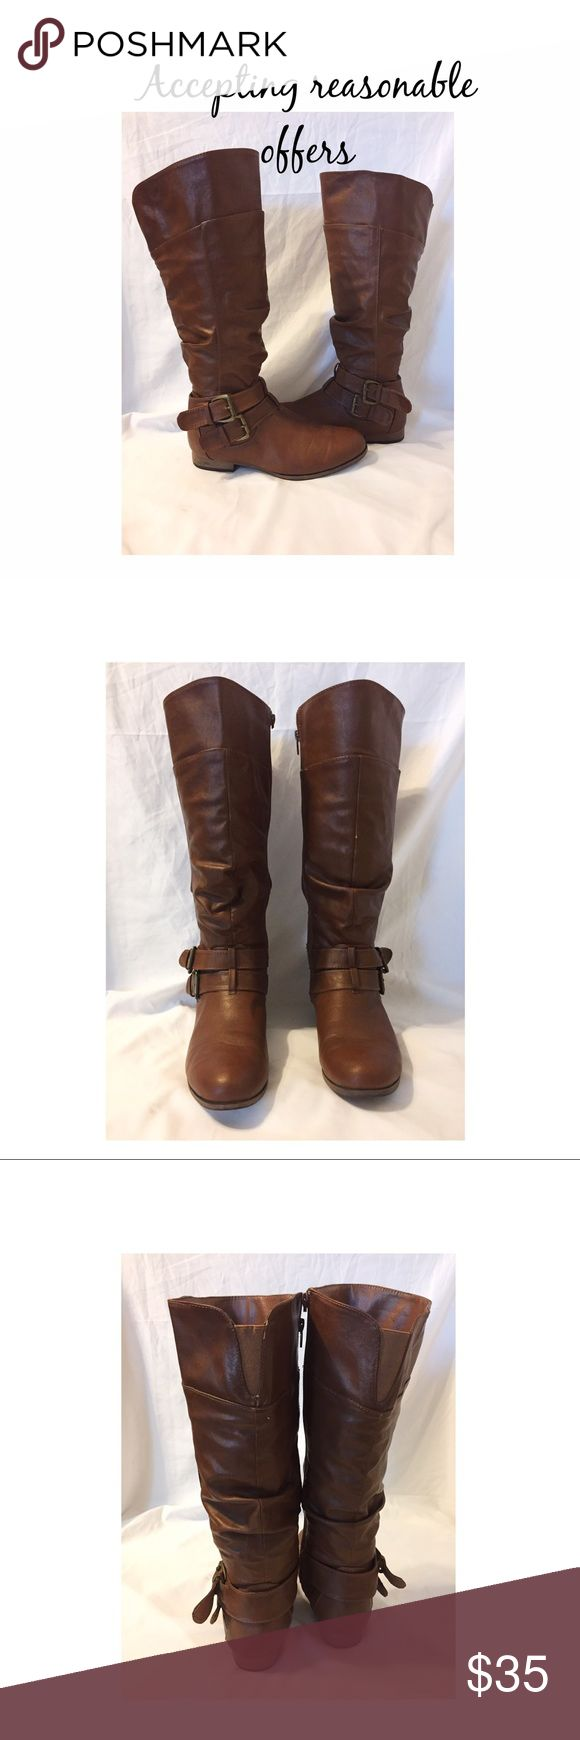 ✨SALE!!✨ Charlotte Russe Boots Brown Charlotte Russe boots in great condition. The top of the handle of the zipper on the right boot is broken off but still works and zips perfectly! :) charlotte russe Shoes Over the Knee Boots